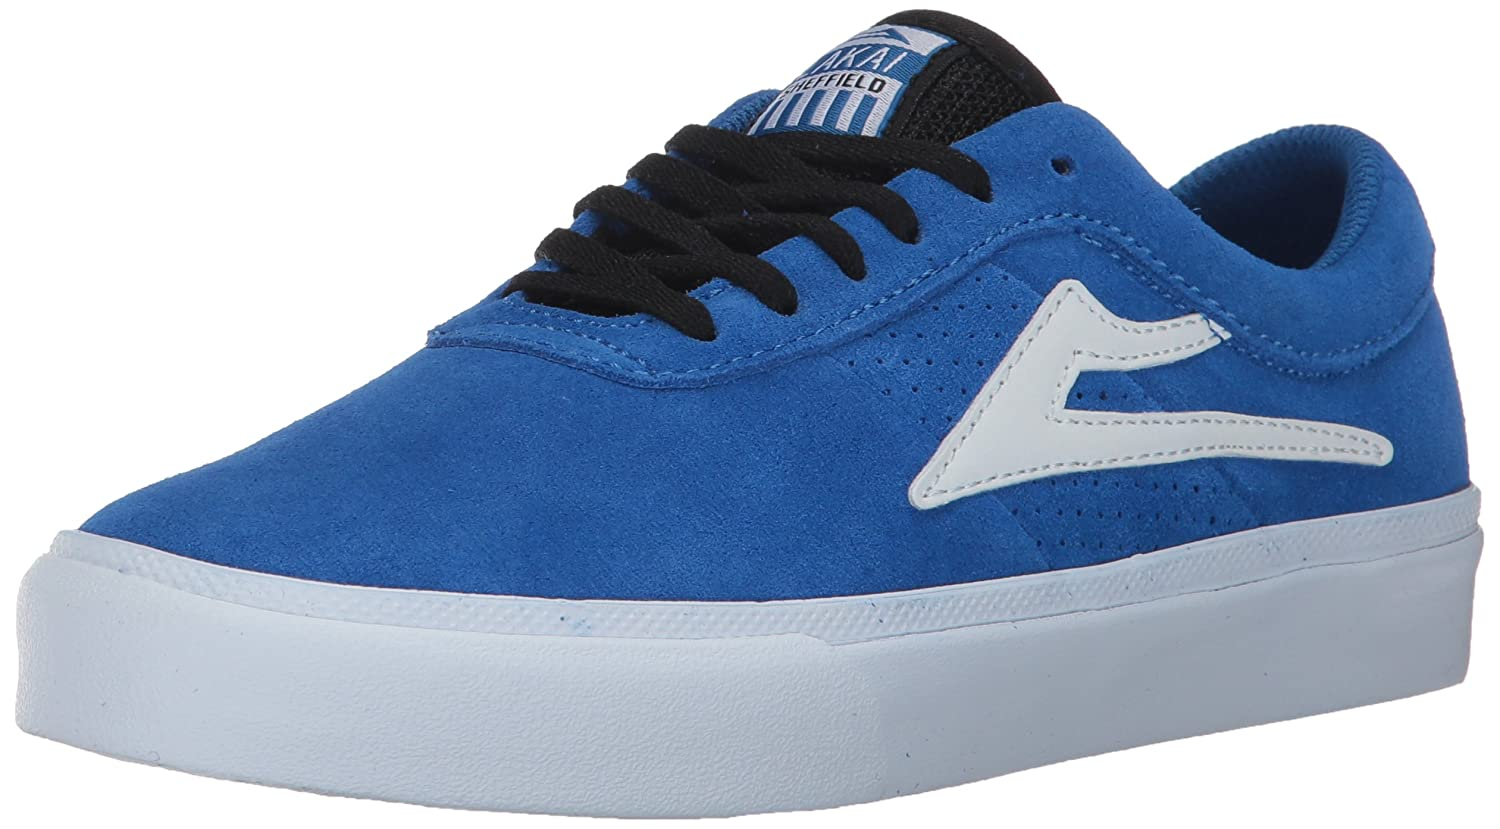 Lakai Sheffield Skate Shoe B01N33DMQG 12 M US|Blue Suede